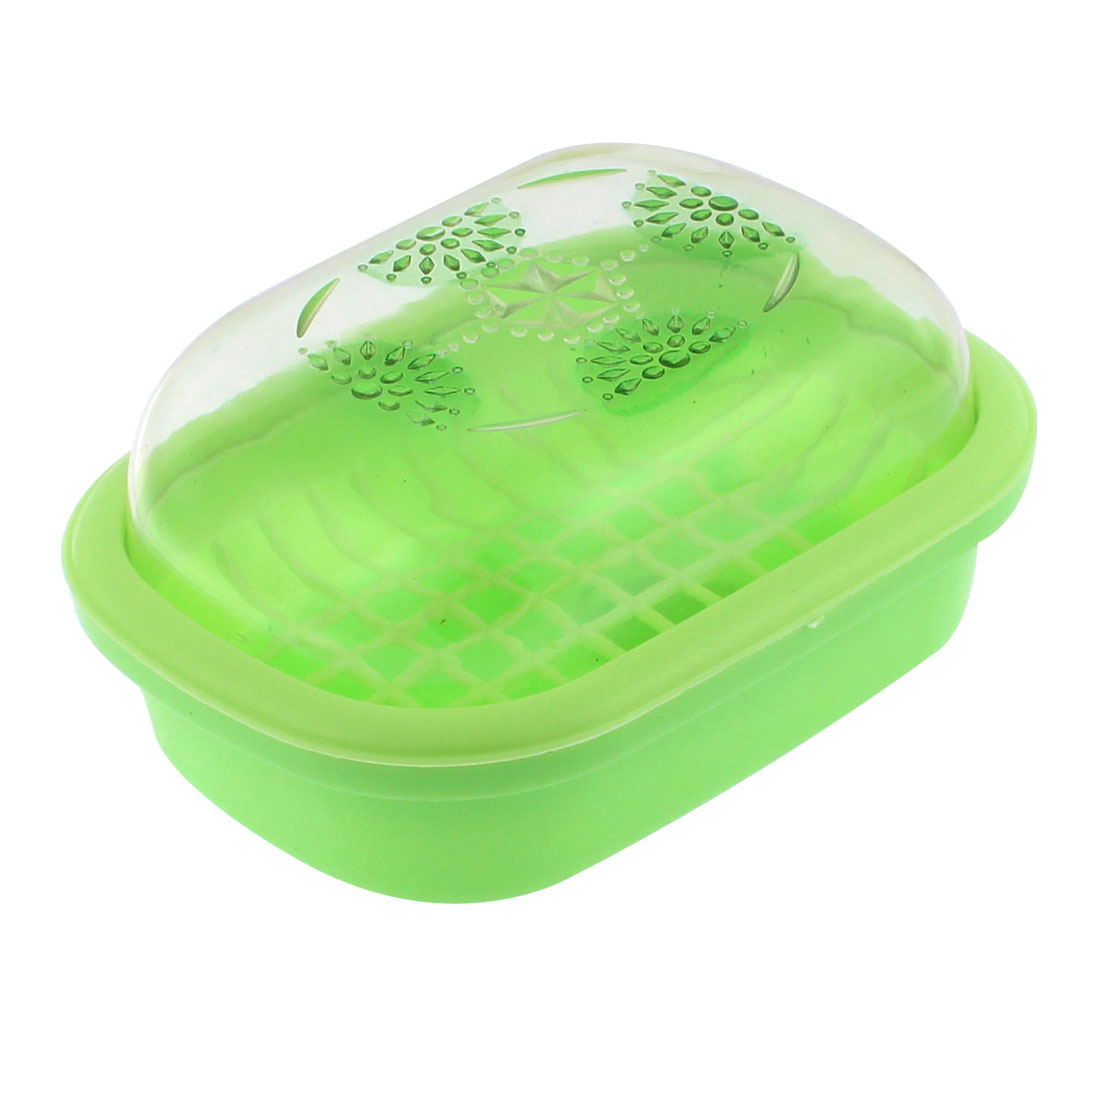 Home Travel Outdoor Camping Soap Dish Case Holder Box Green